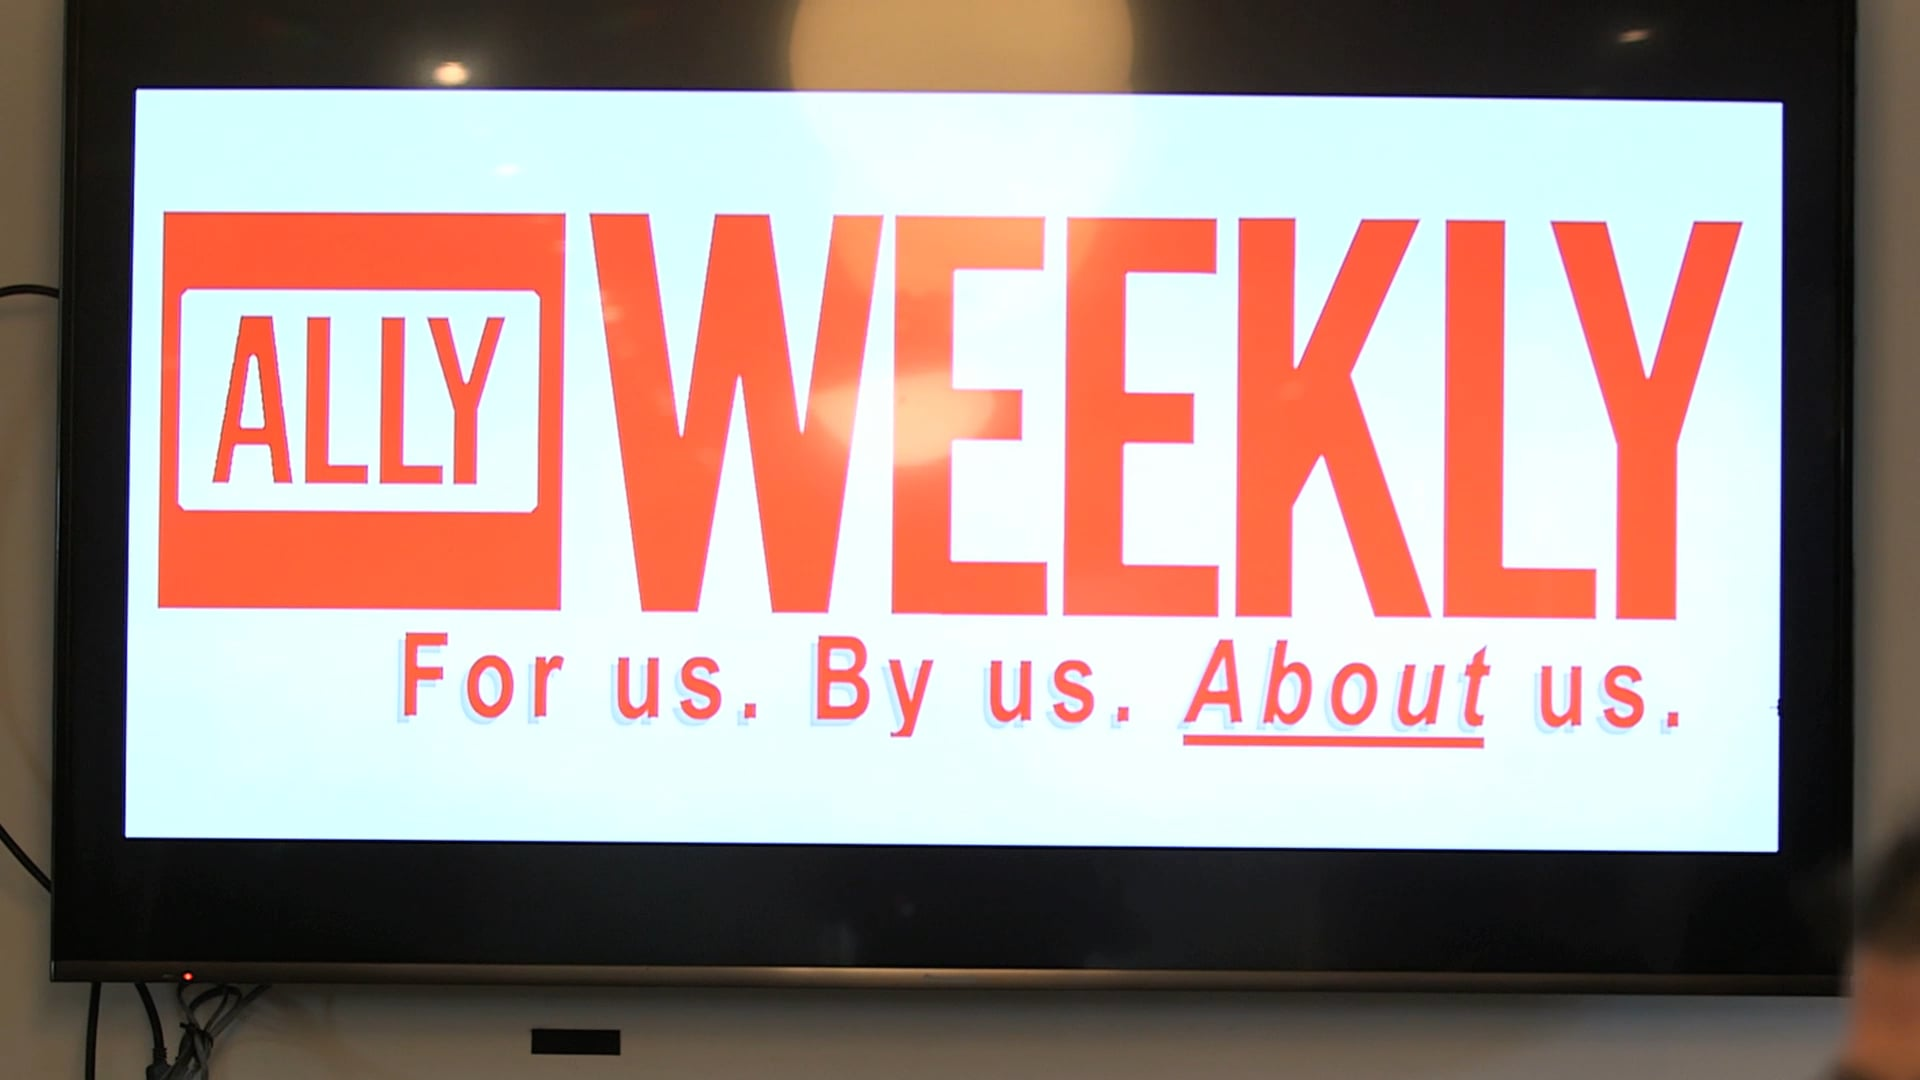 ALLY WEEKLY